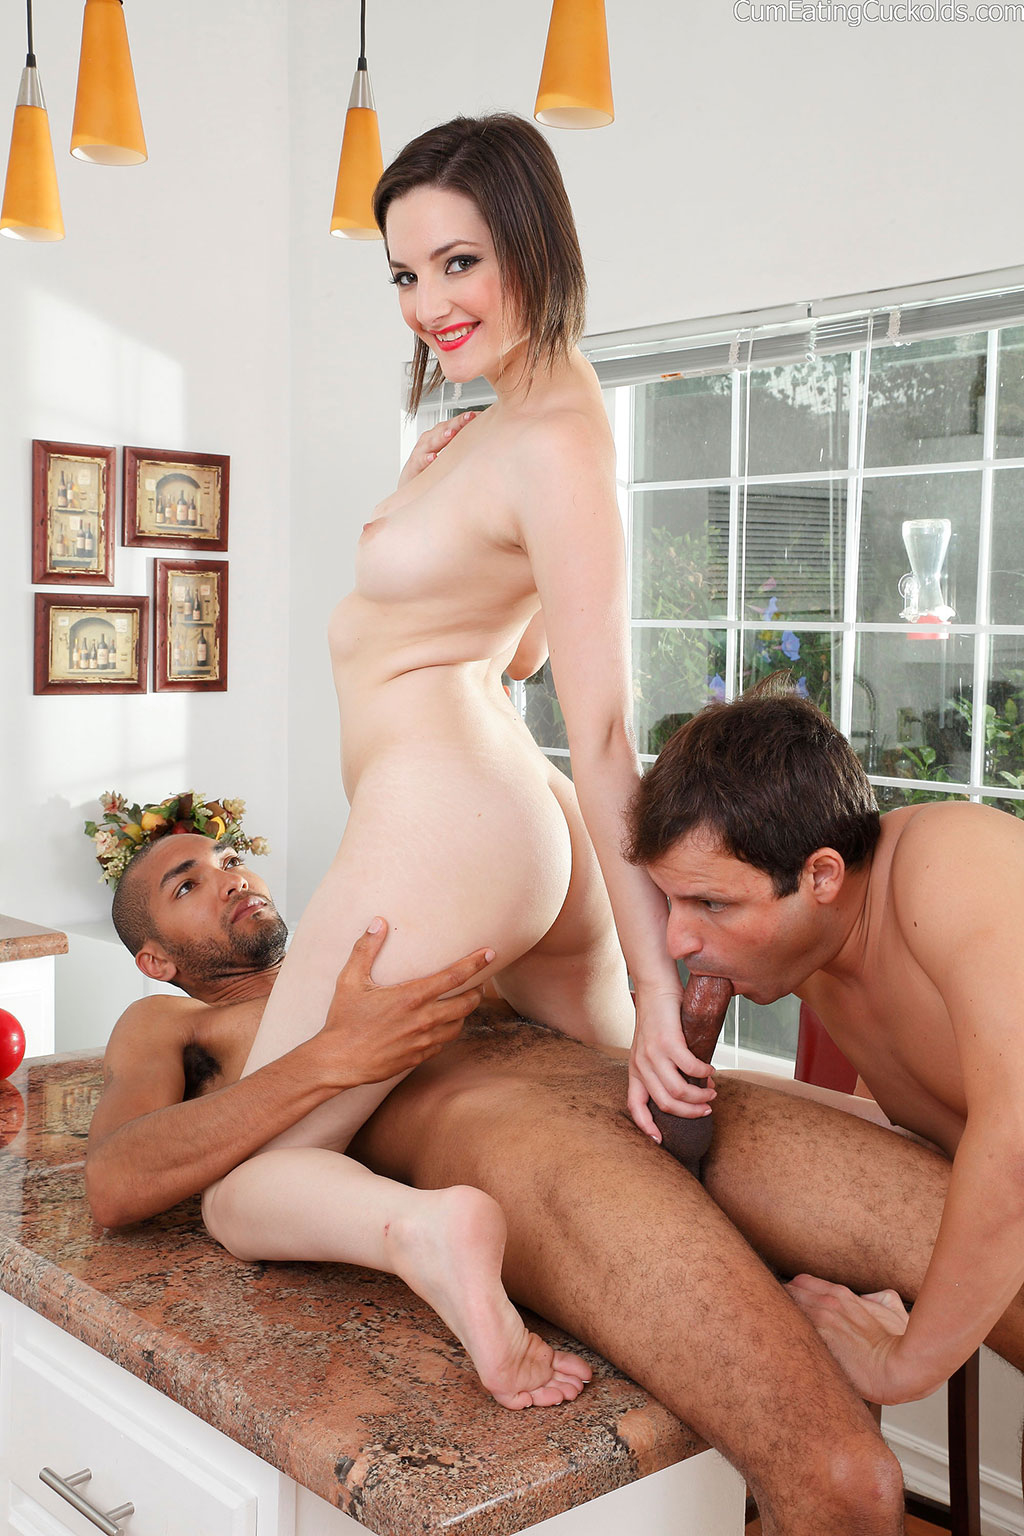 cuckhold husband porn site Cuckold Movies.